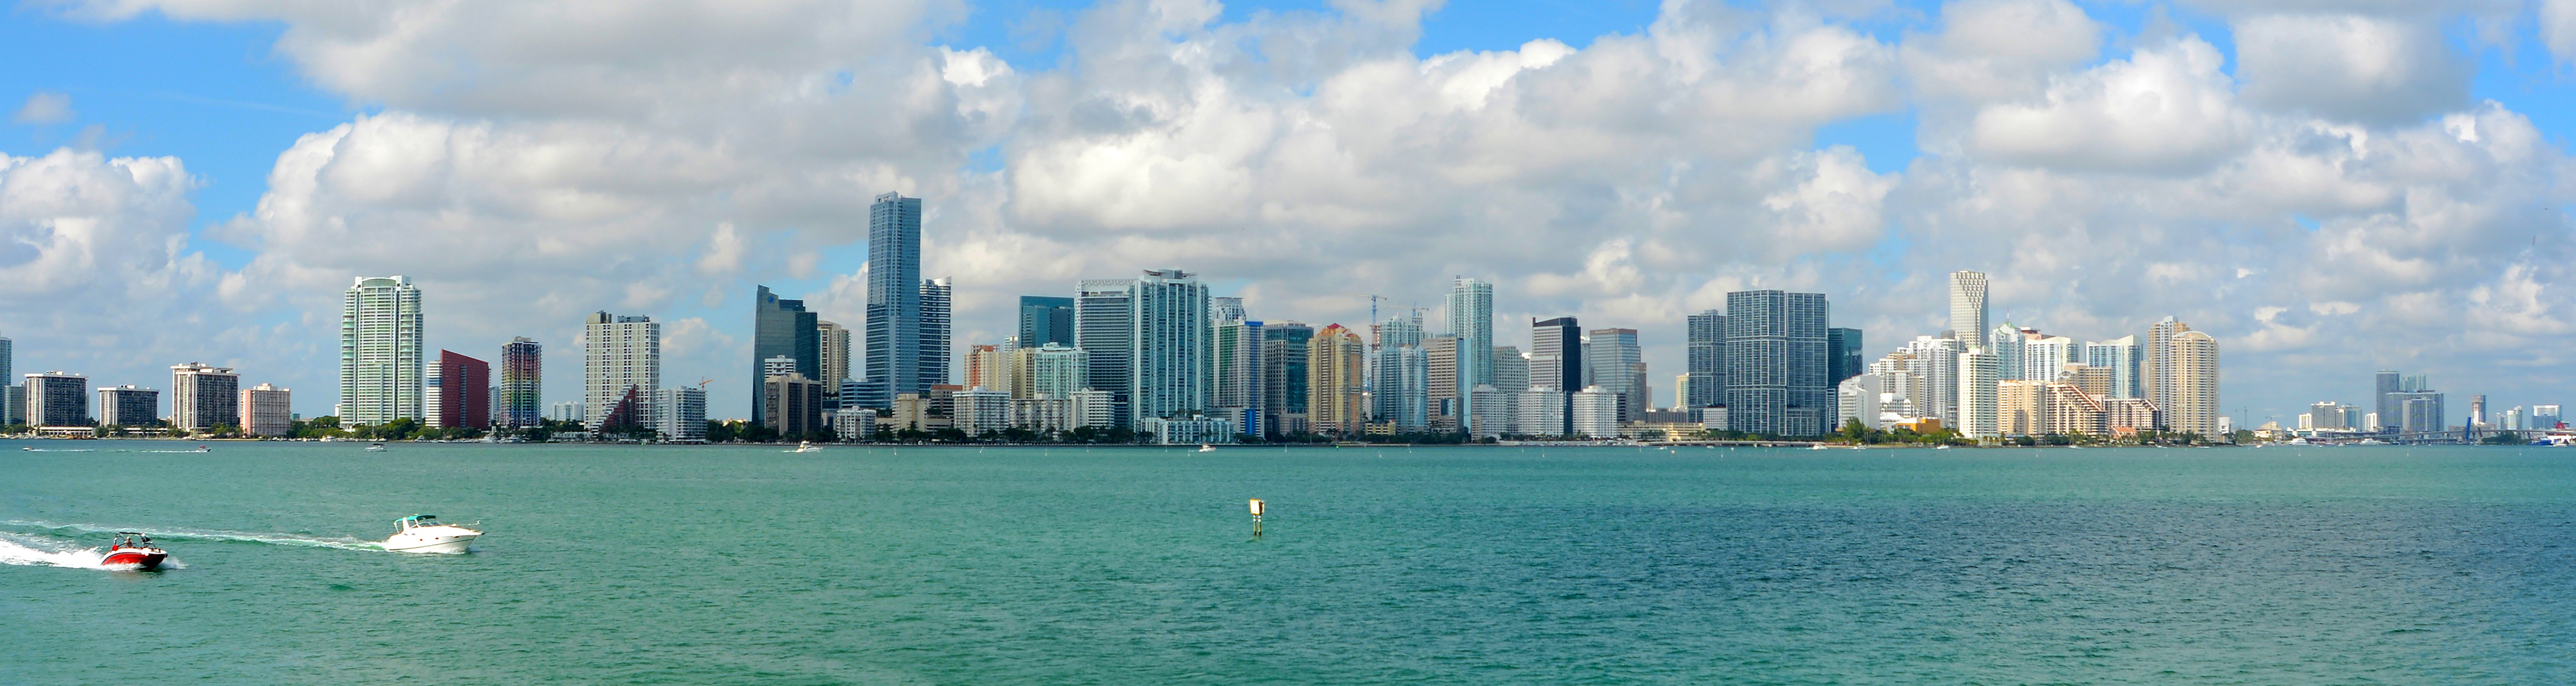 wikipedia mons 9 95 Downtown Miami Panorama from the Rusty Pelican photo D Ramey Logan